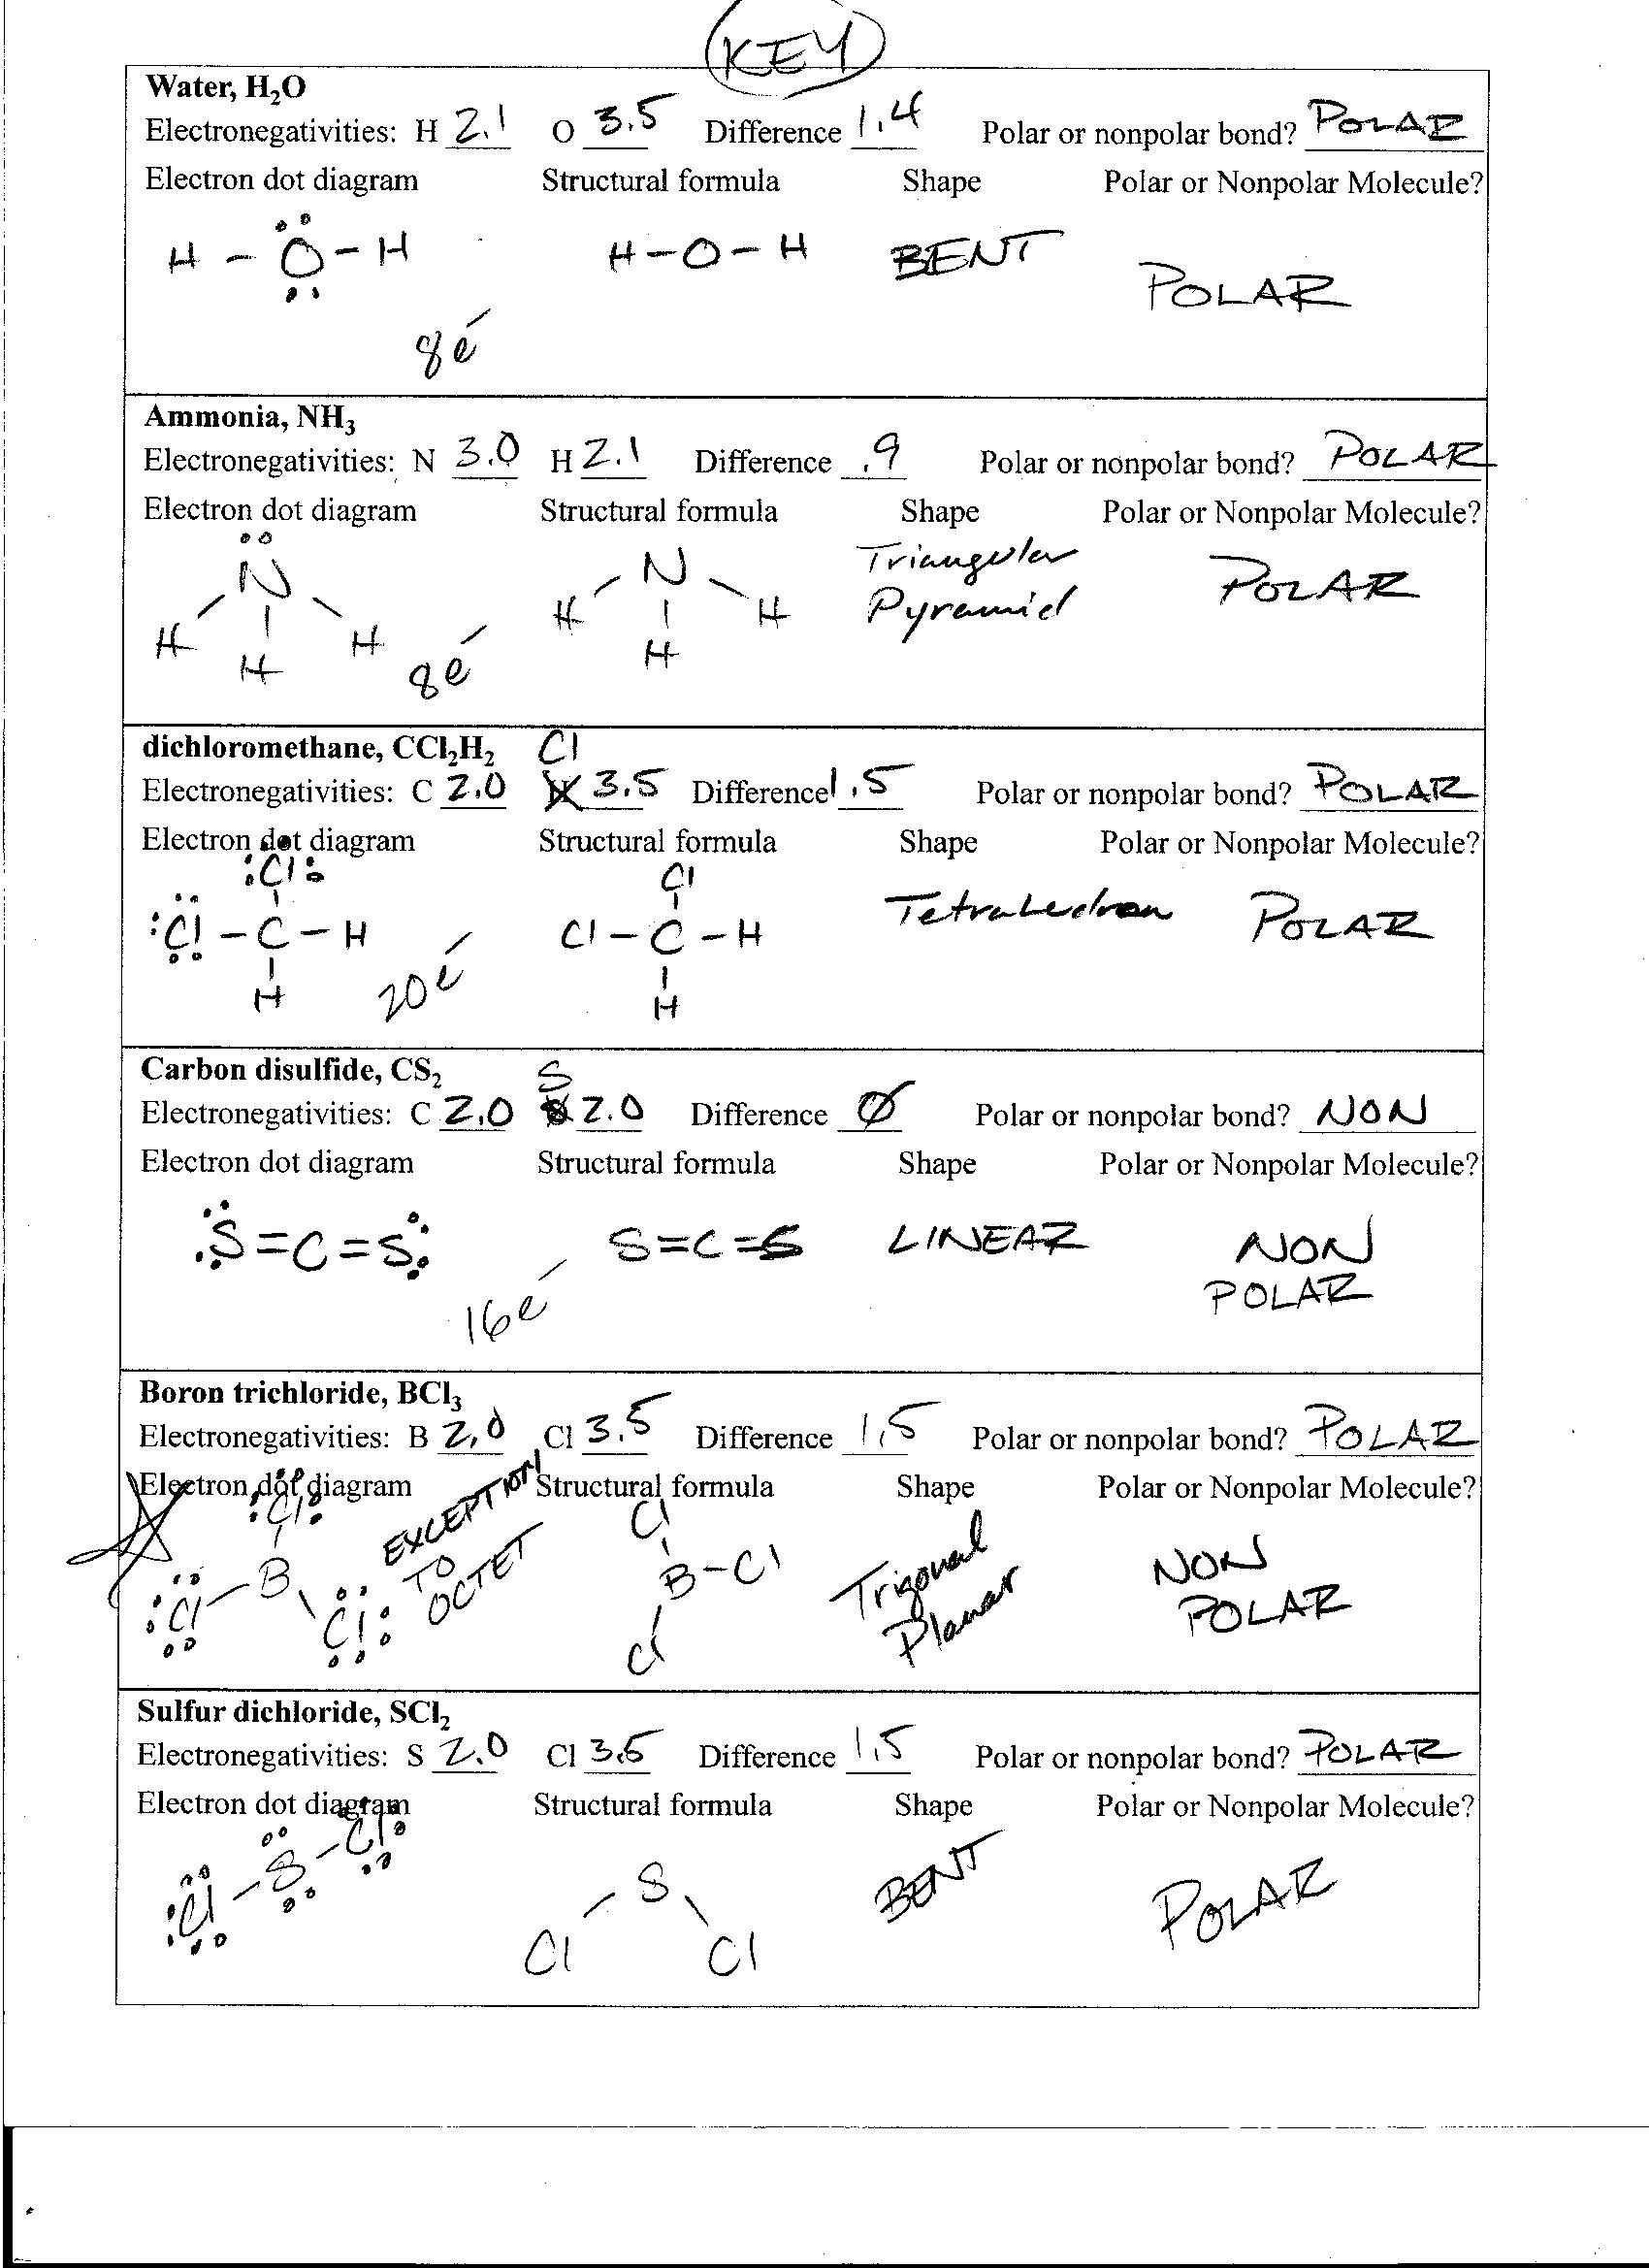 Molecular Polarity Worksheets